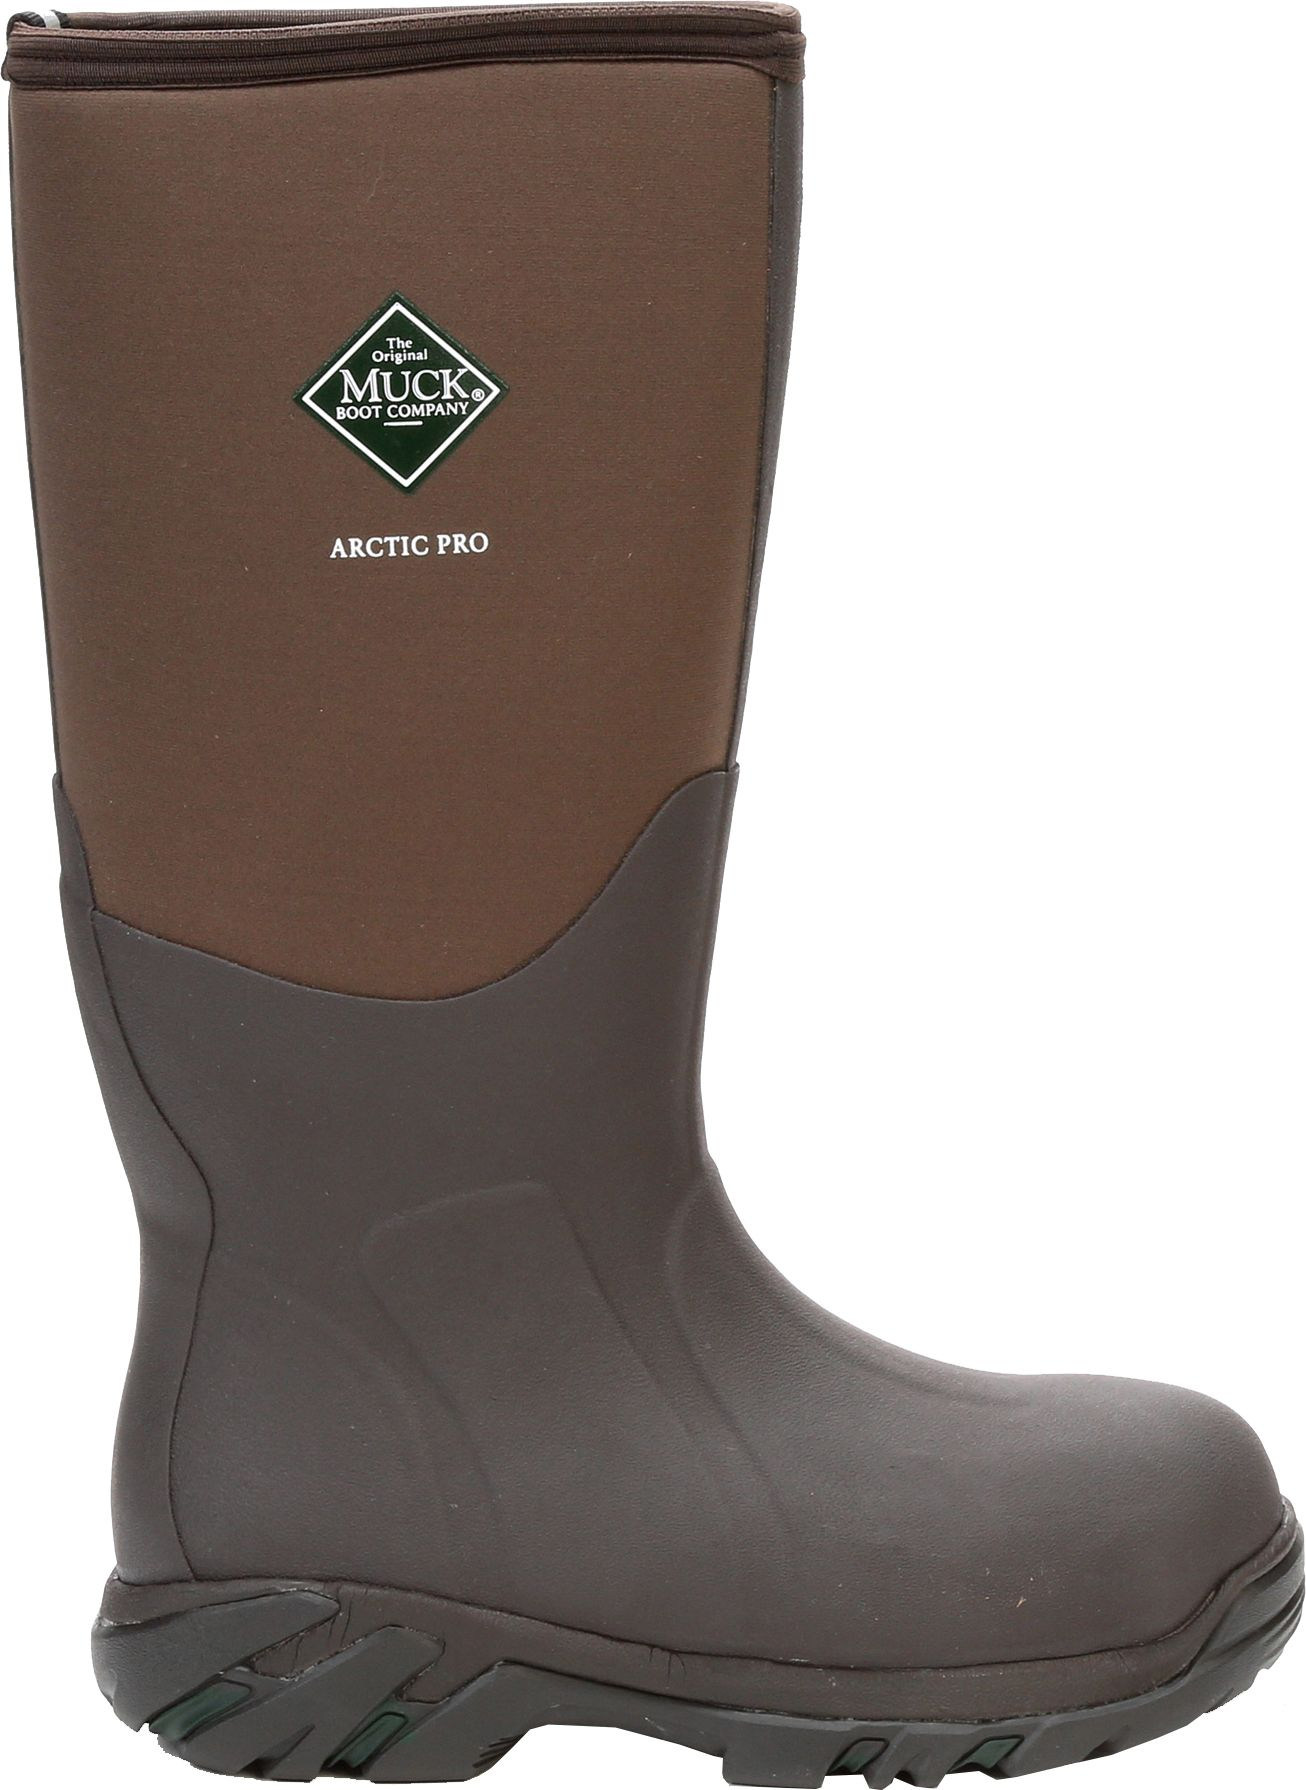 Muck Boots Men's Arctic Pro Rubber Hunting Boots | Field & Stream